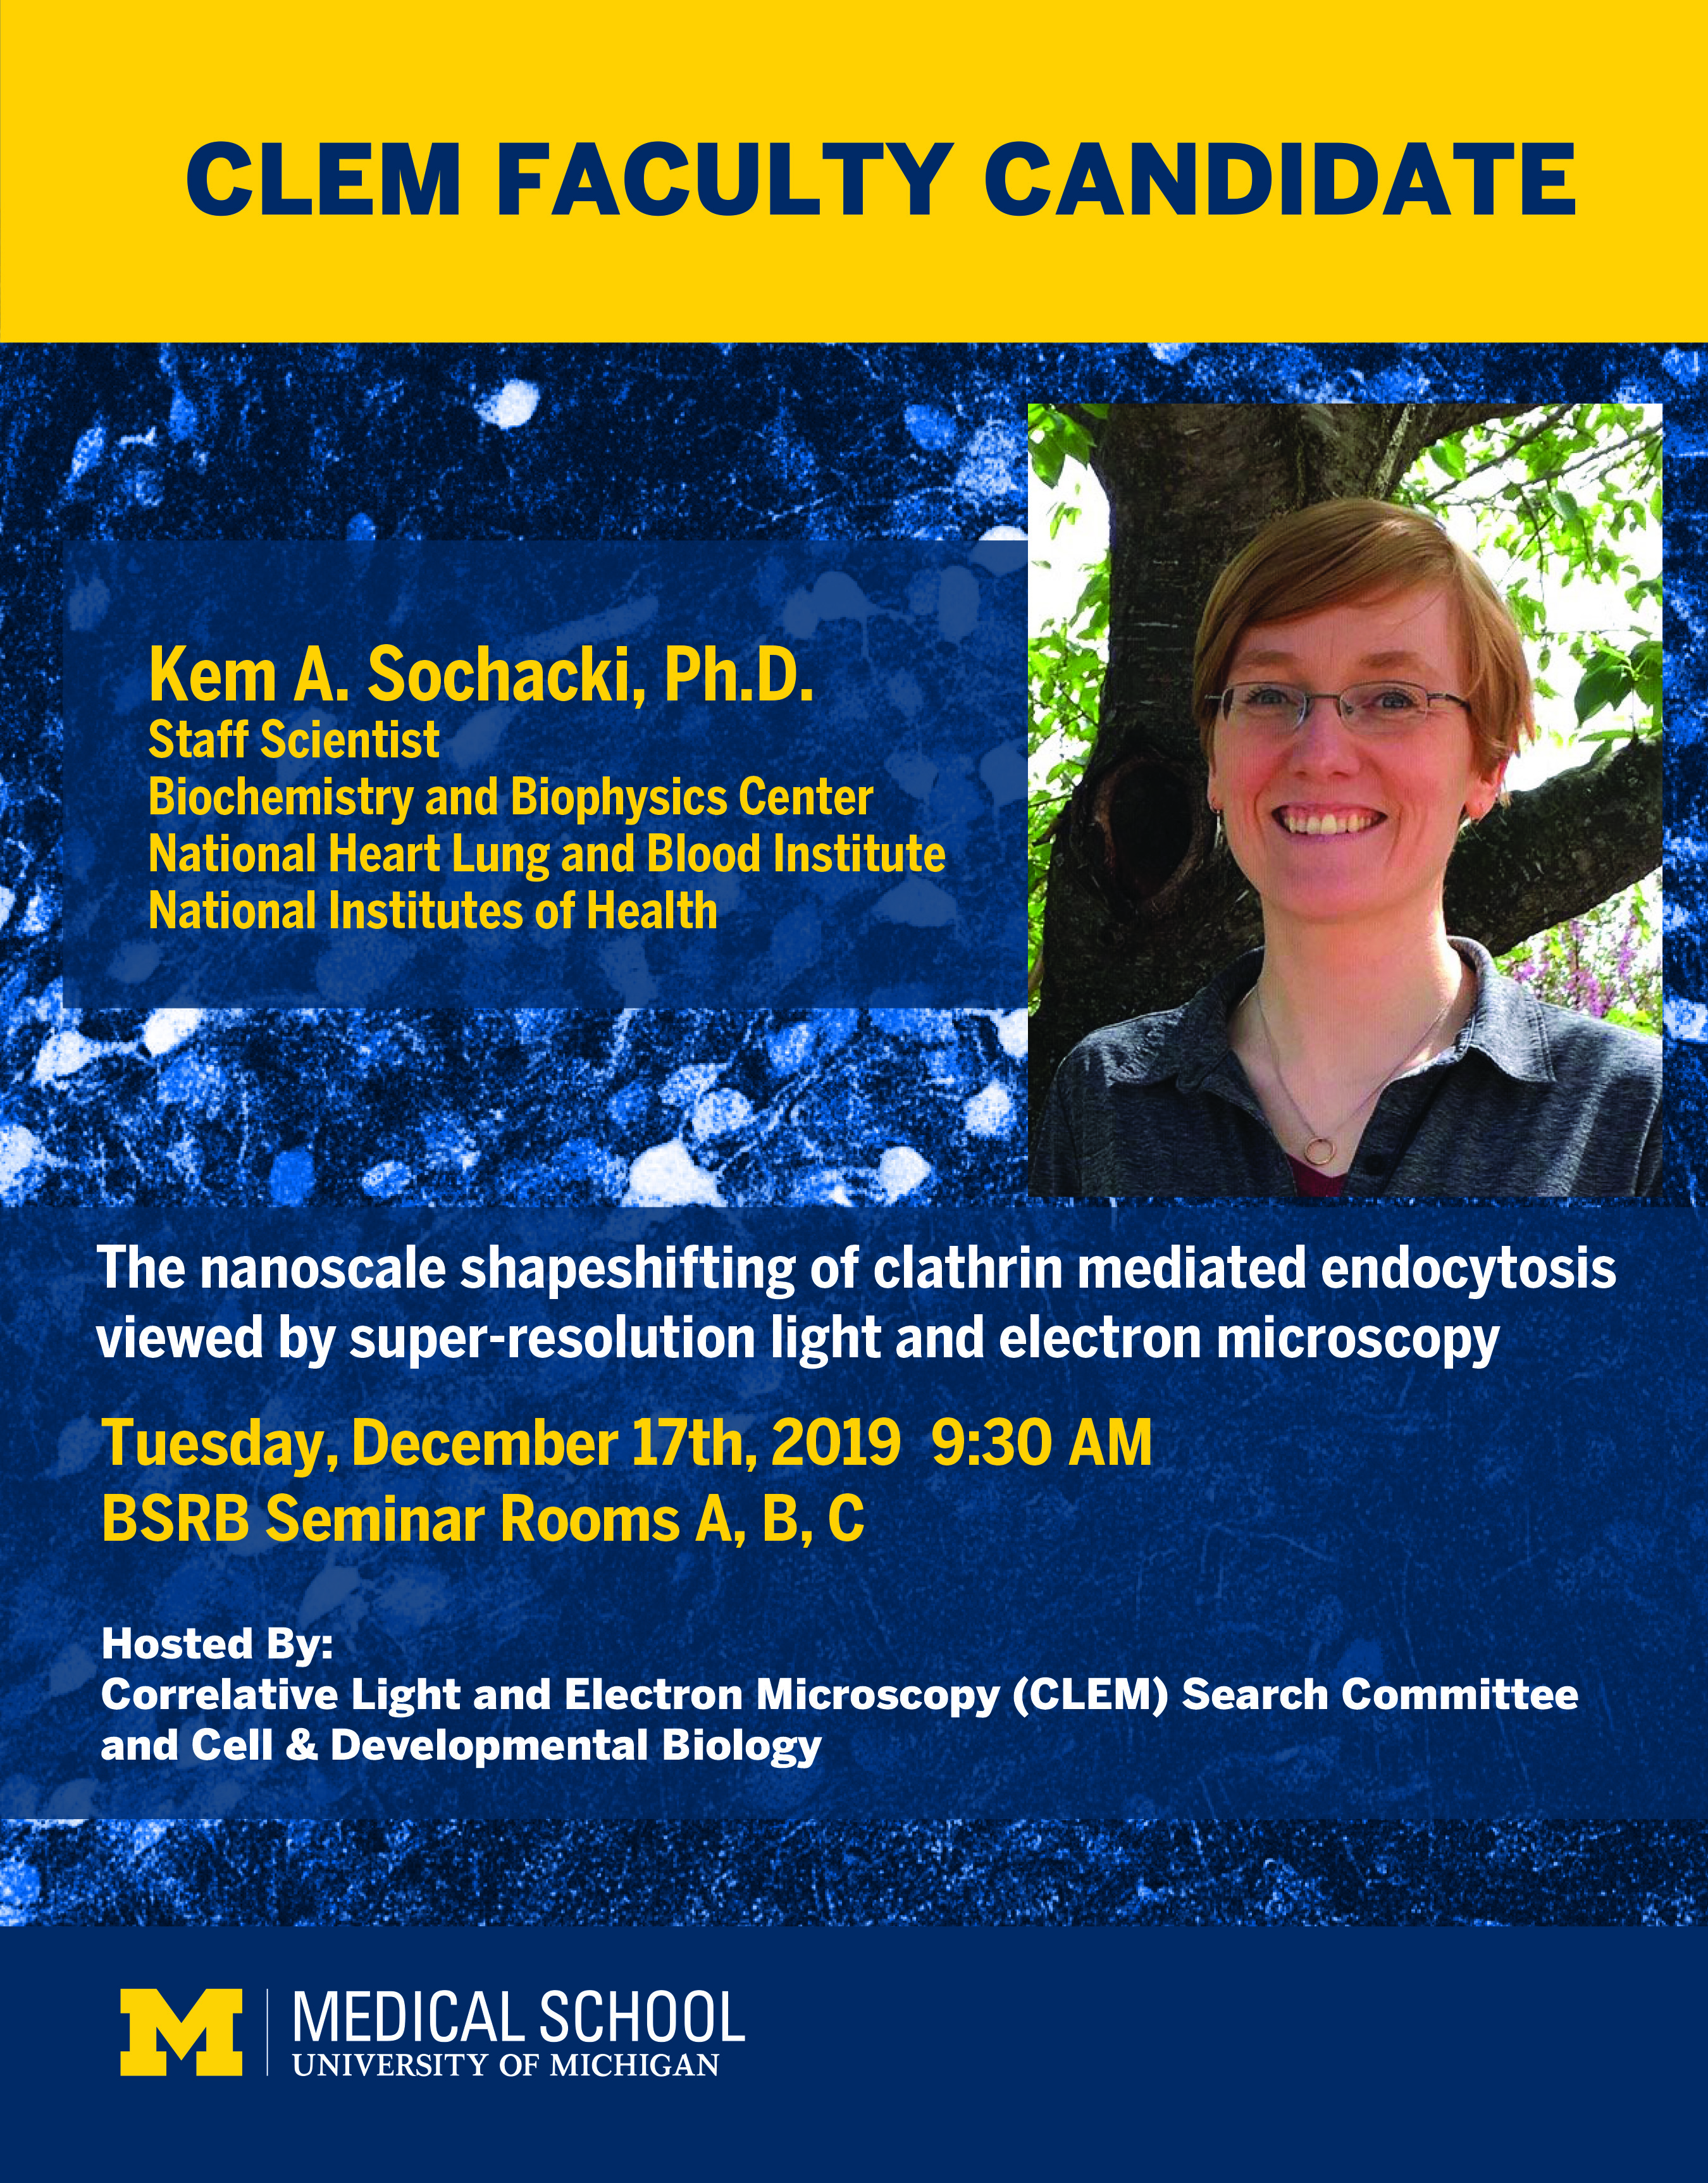 CLEM Faculty Candidate - Sochacki